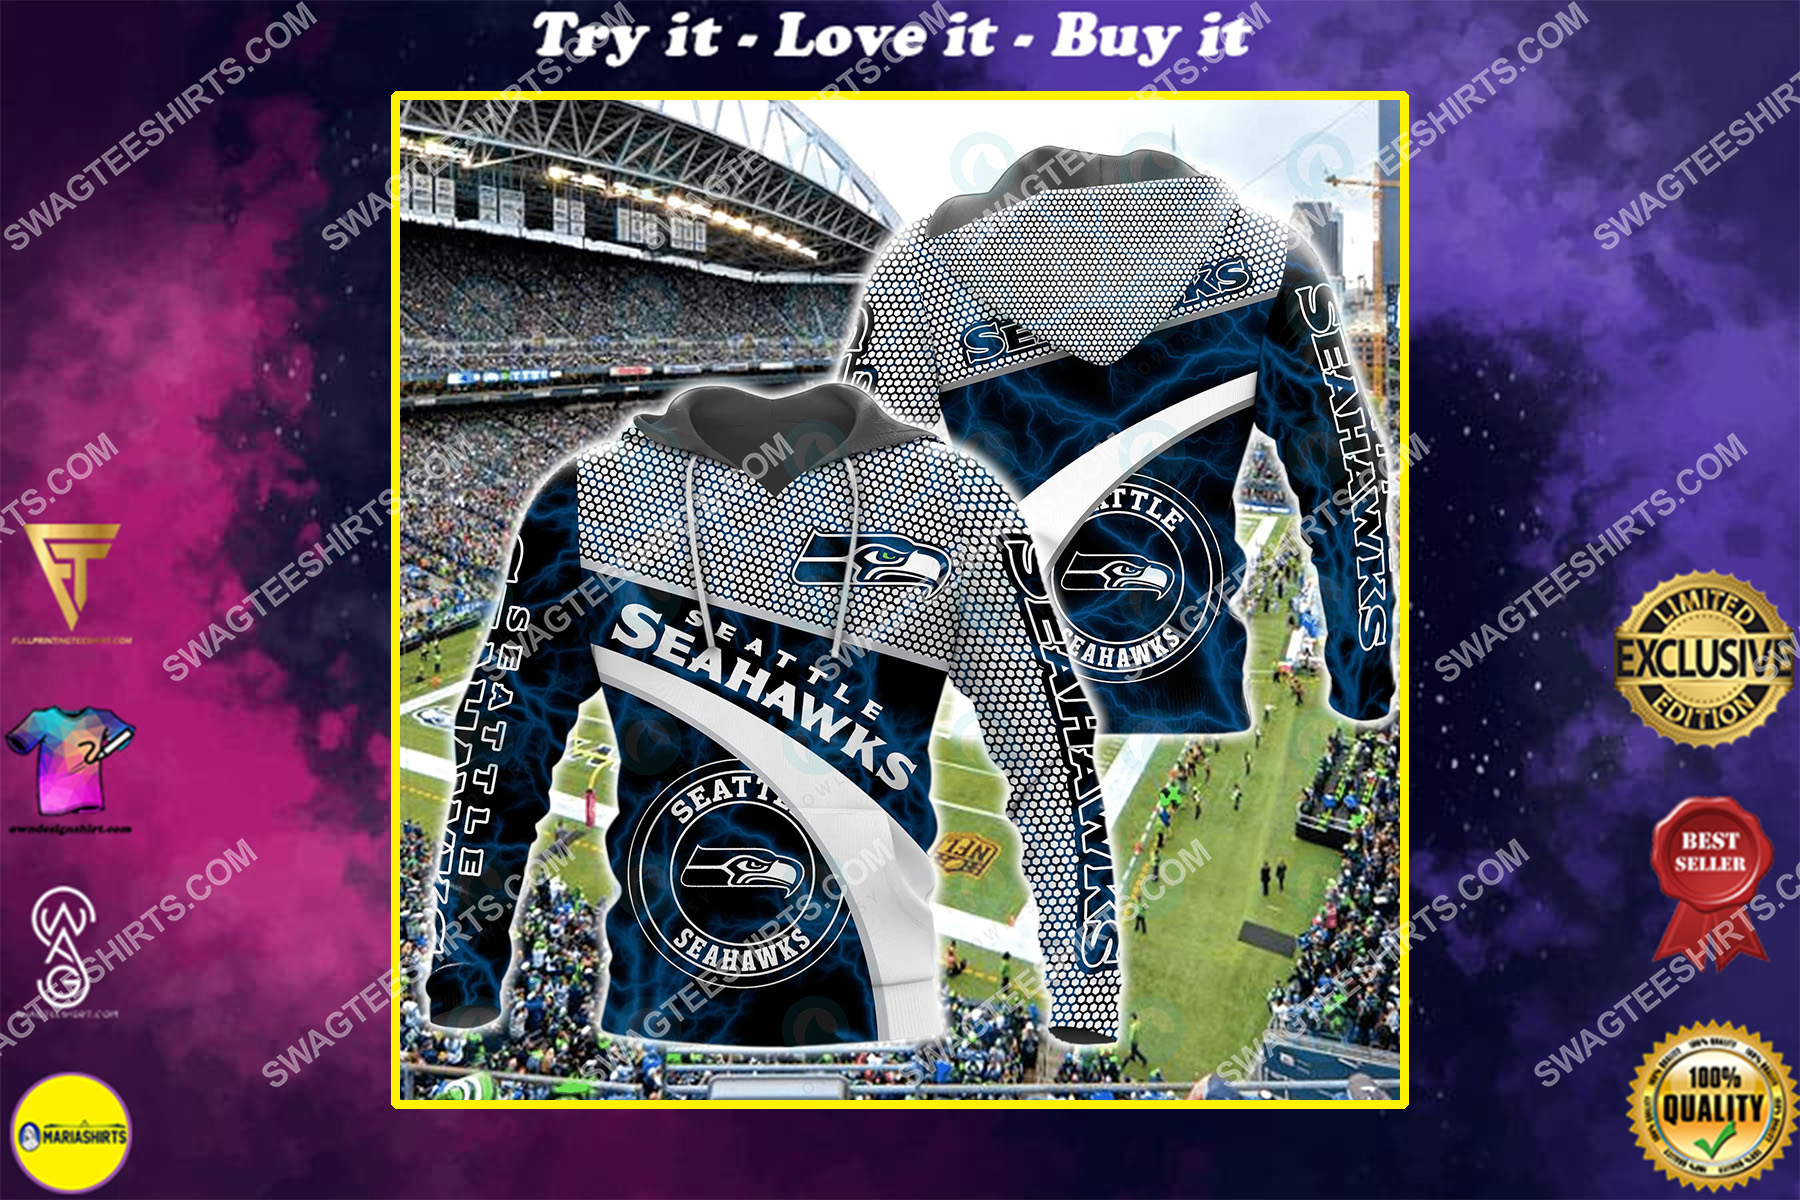 american football team seattle seahawks all over printed shirt